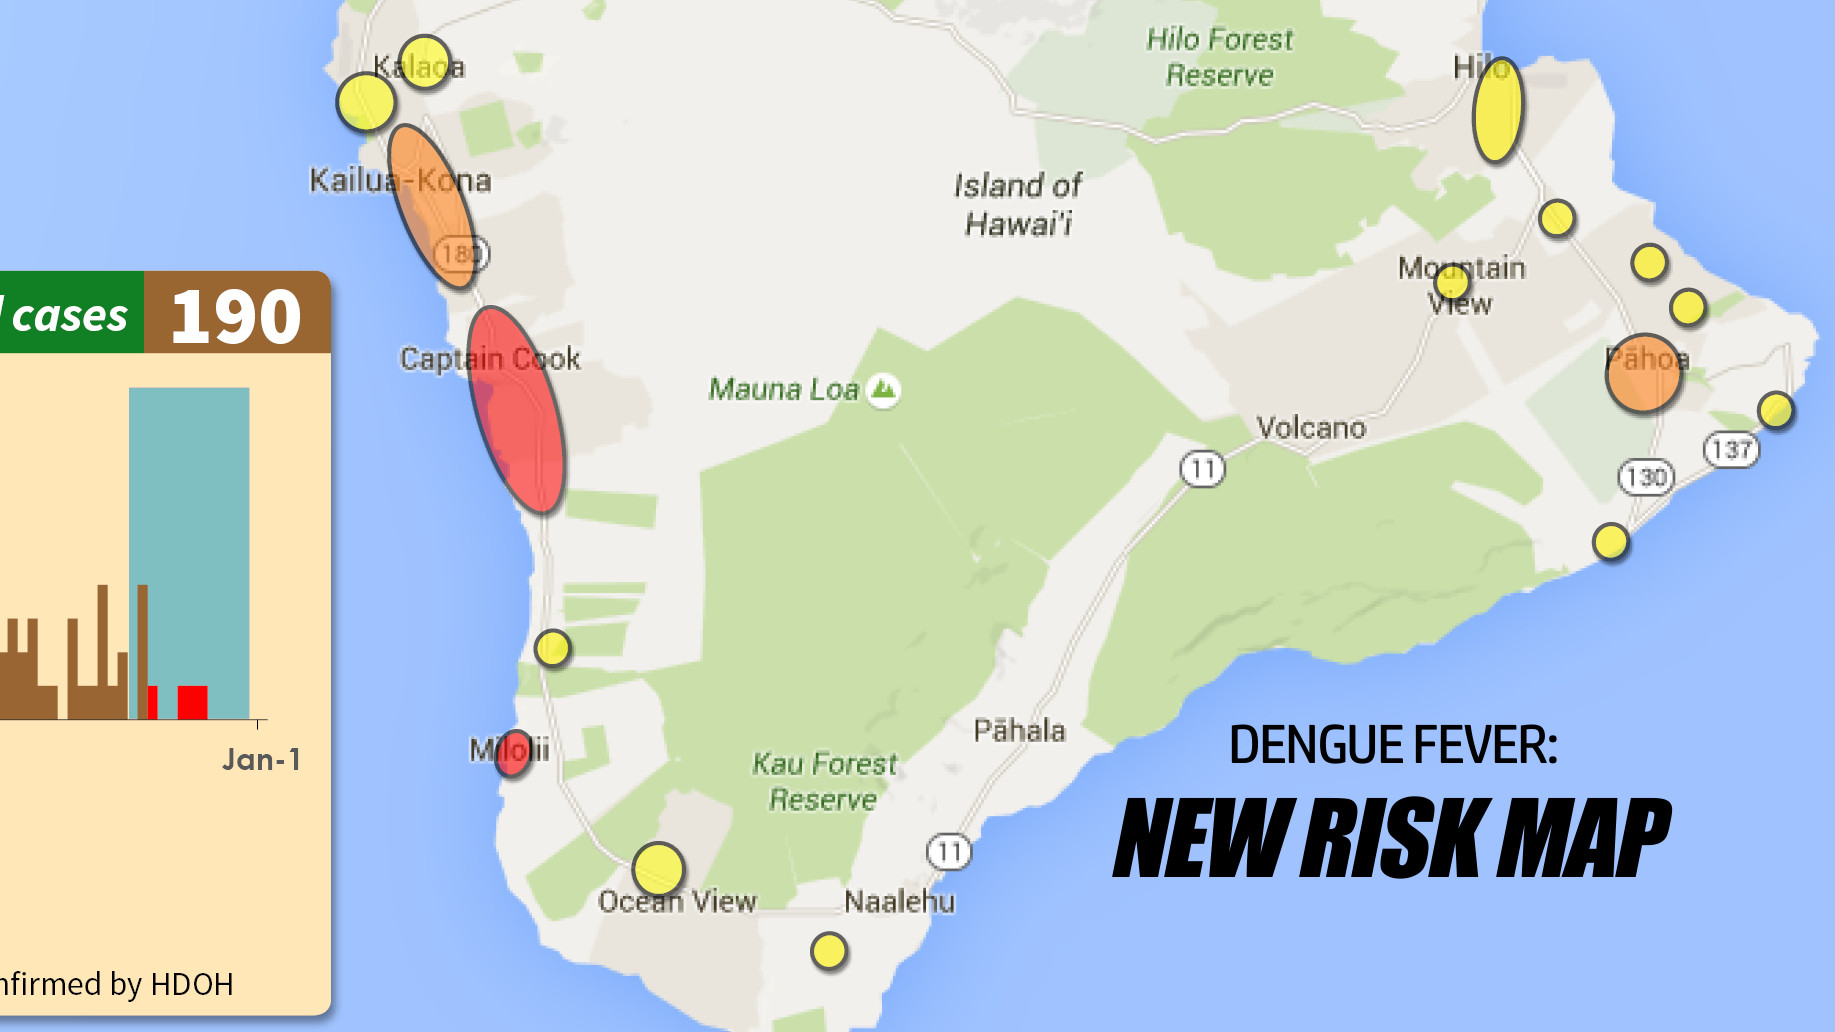 Dengue Fever Cases Jump To 190, New Hawaii Risk Map Released